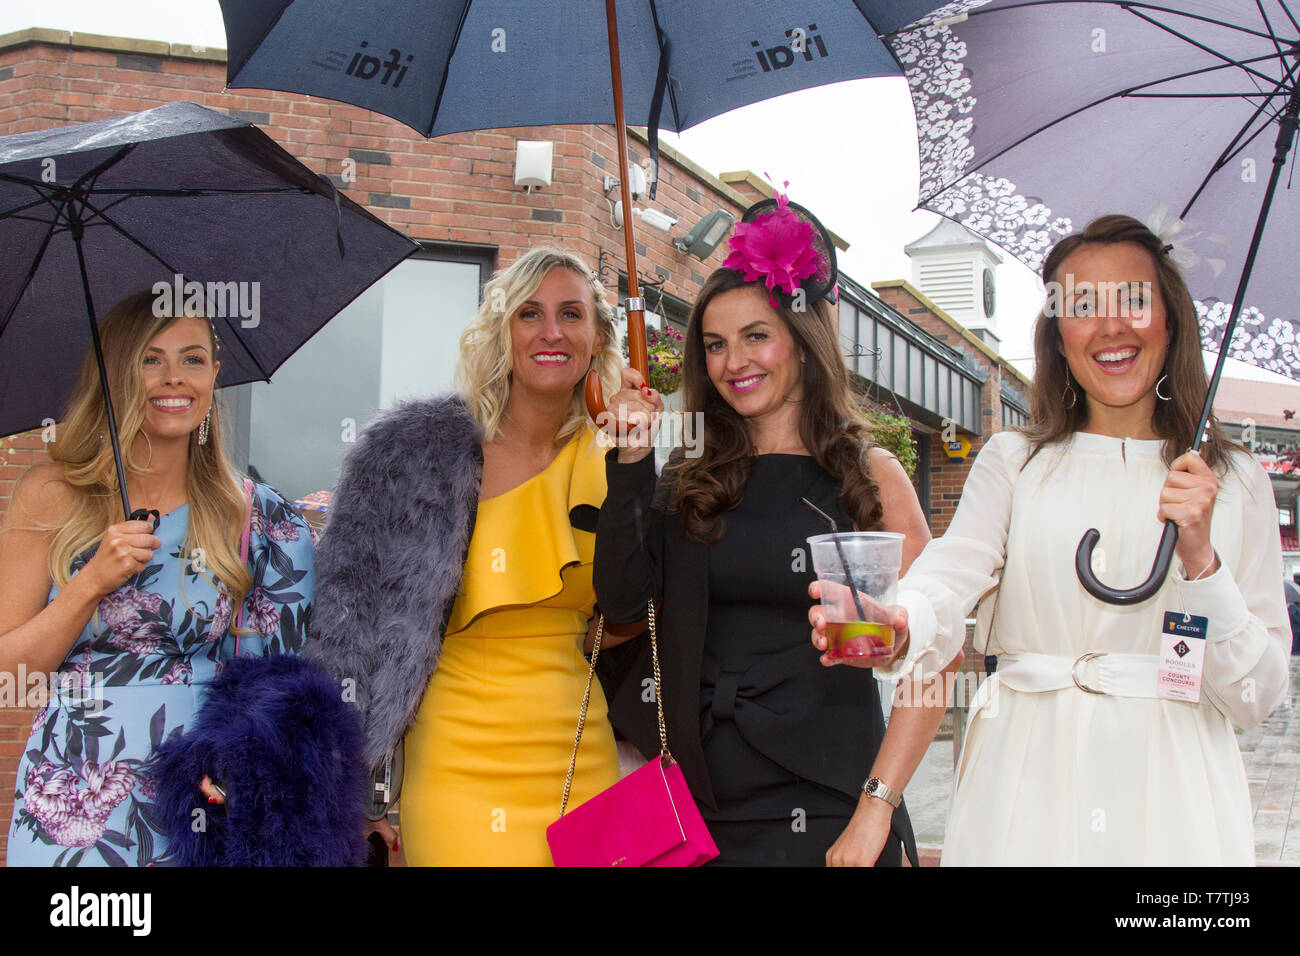 Chester, UK. 9th May, 2019 Boodles May Festival. The famous horse racing event welcomes fashionistas & street style people on this very special parade of the finest expensive female fashions. Glamorous racegoers women in fancy outfits, ladies in figure-hugging suits, floral dresses, lovely, charming, elegant, splendid, impressive, magnificent, prestigious fashionable frocks, plush opulent, ritzy patrons, lovely, charming, elegant, splendid hats, headbands & fashion finery wearing high end couture attend Chester Races. Credit. MWI/AlamyLiveNews - Stock Image